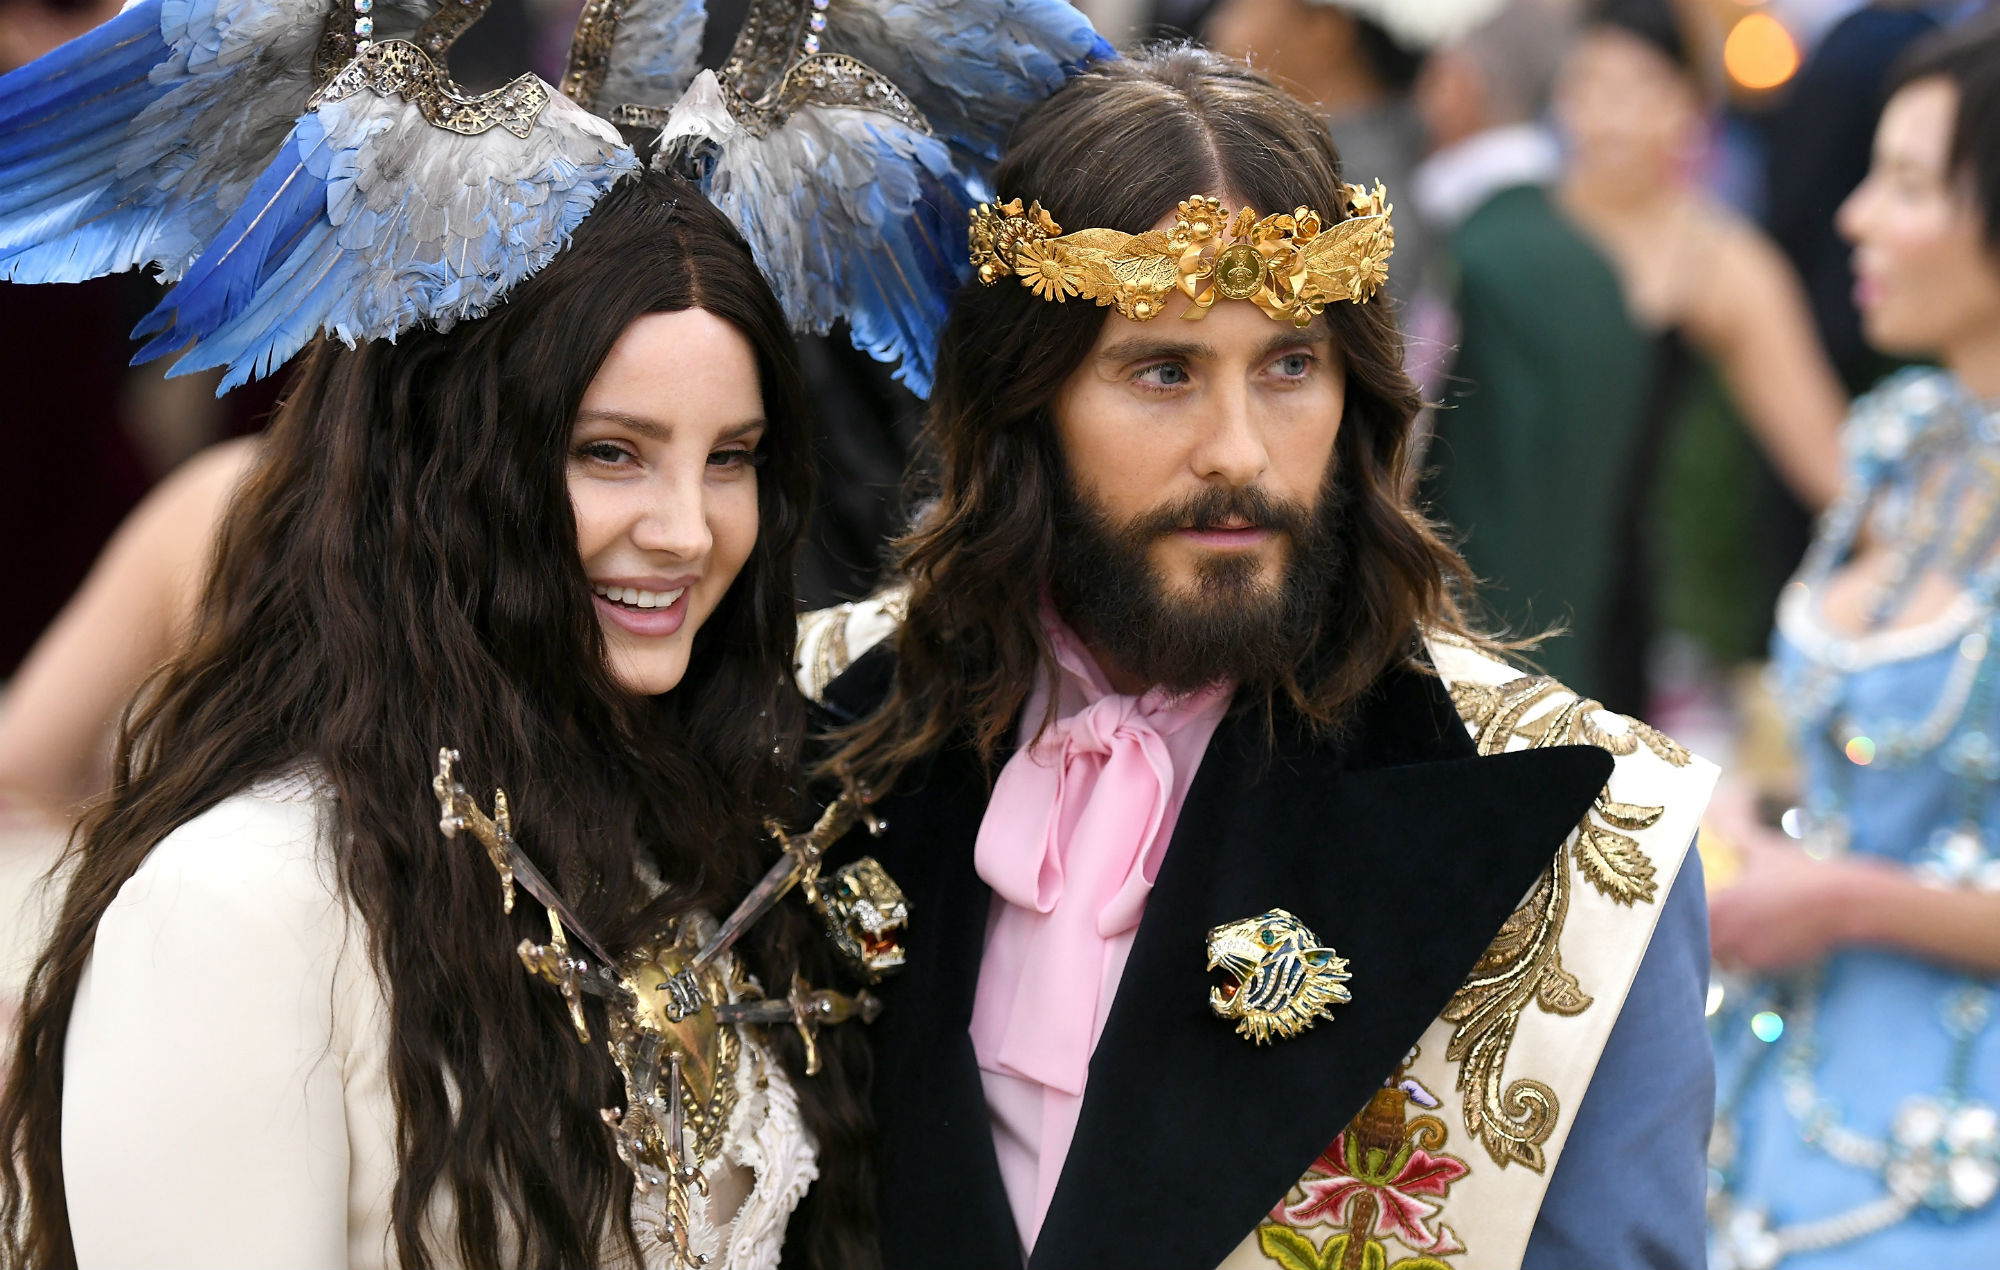 Lana Del Rey And Jared Leto Are The Faces Of A New Gucci